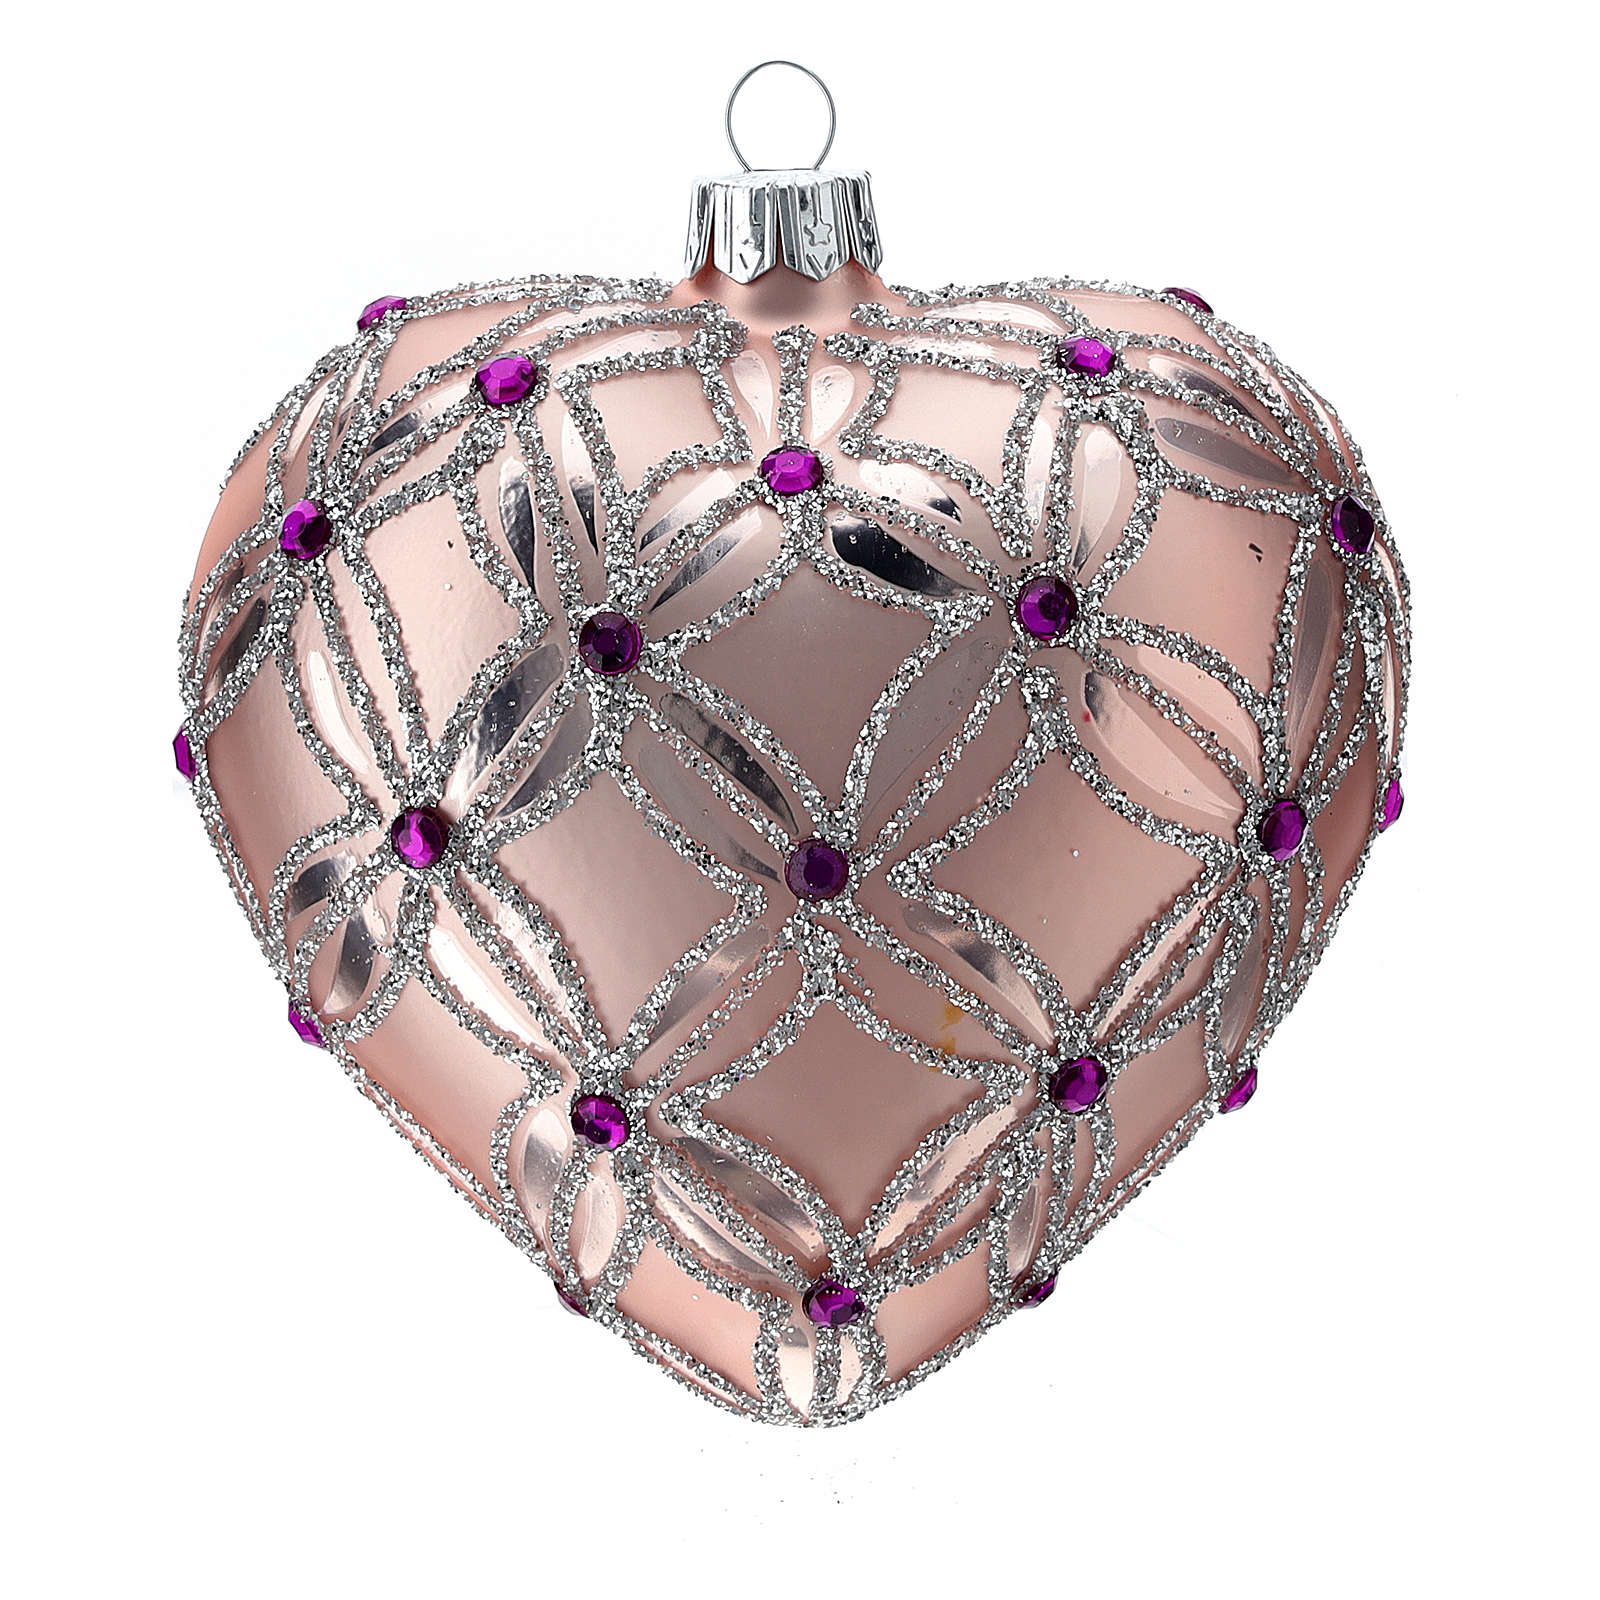 Heart Shaped Christmas bauble in blown glass with pink and violet decorations 100mm 4